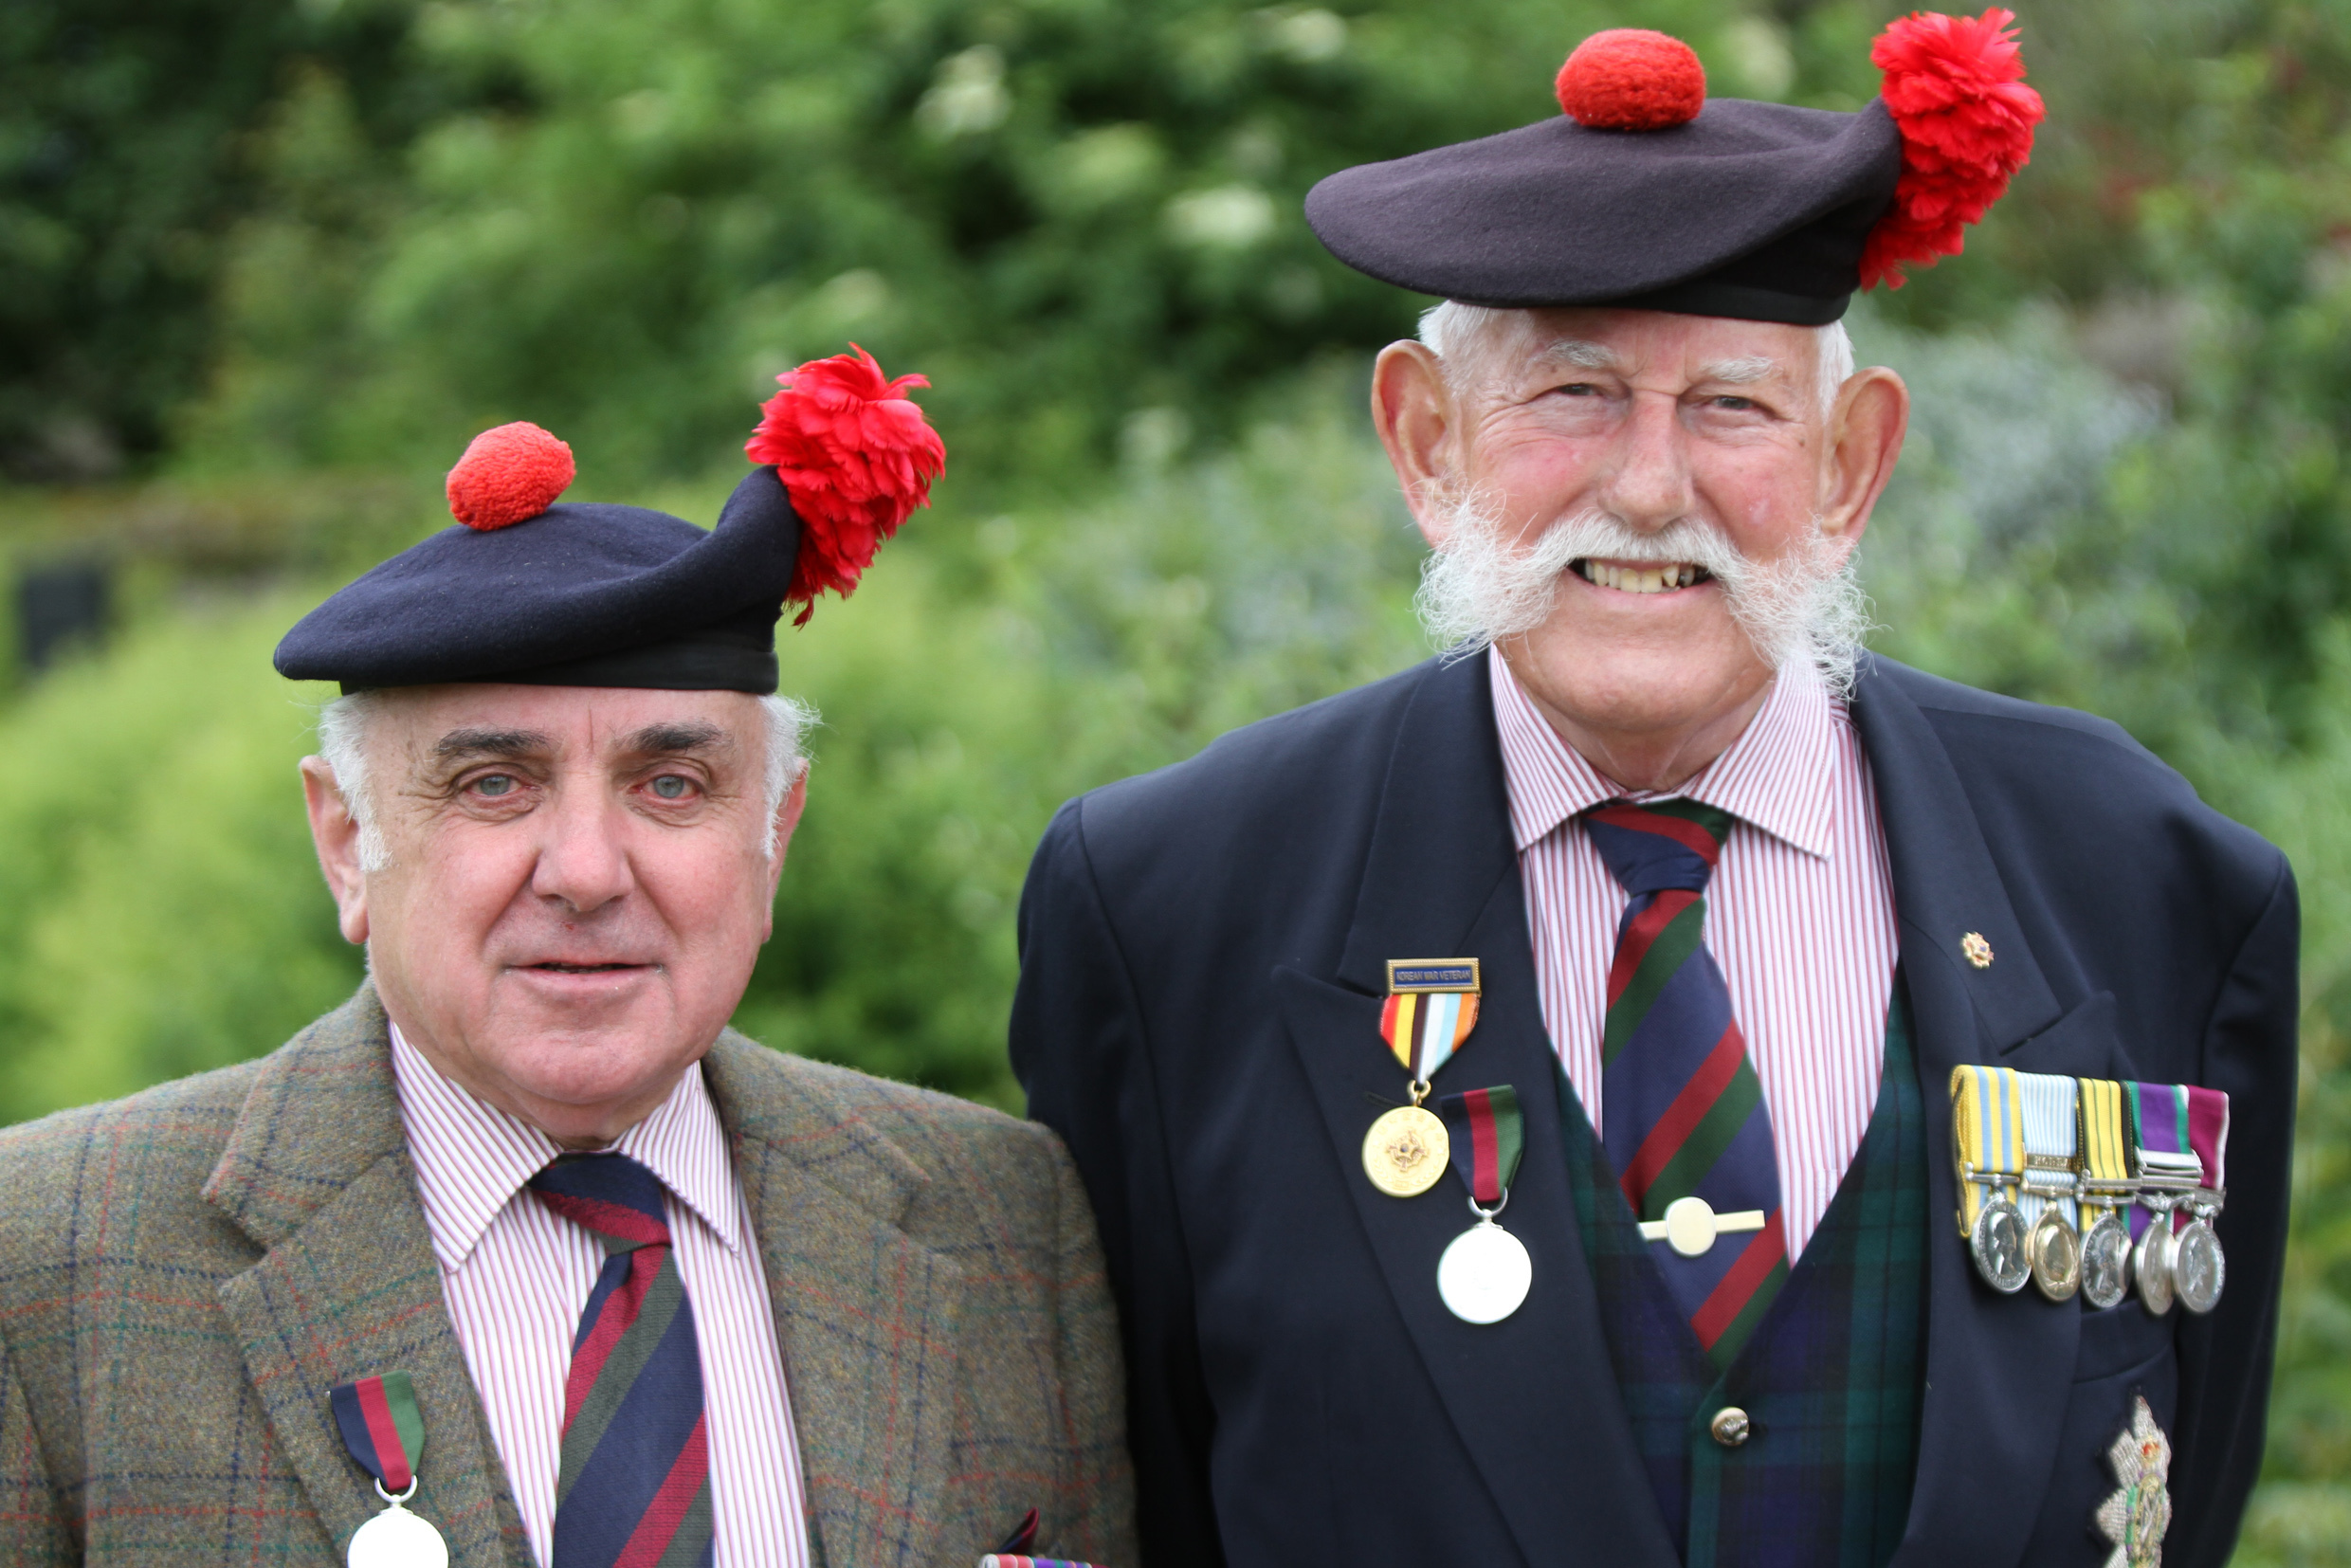 Ronnie Proctor with the late Joe Hubble before a Black Watch parade in Perth.